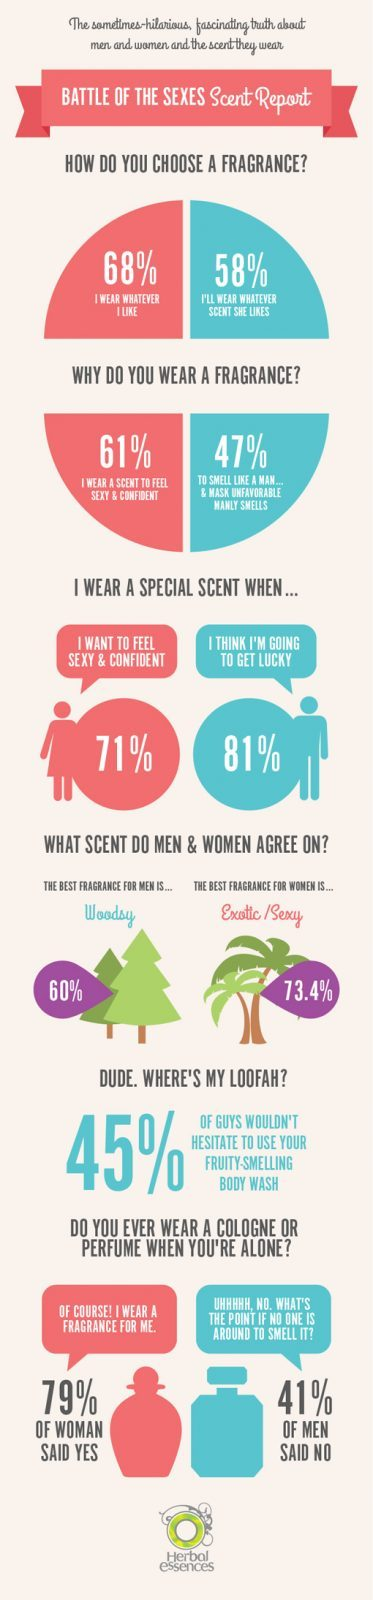 Battle-Of-The-Sexes-Infographic